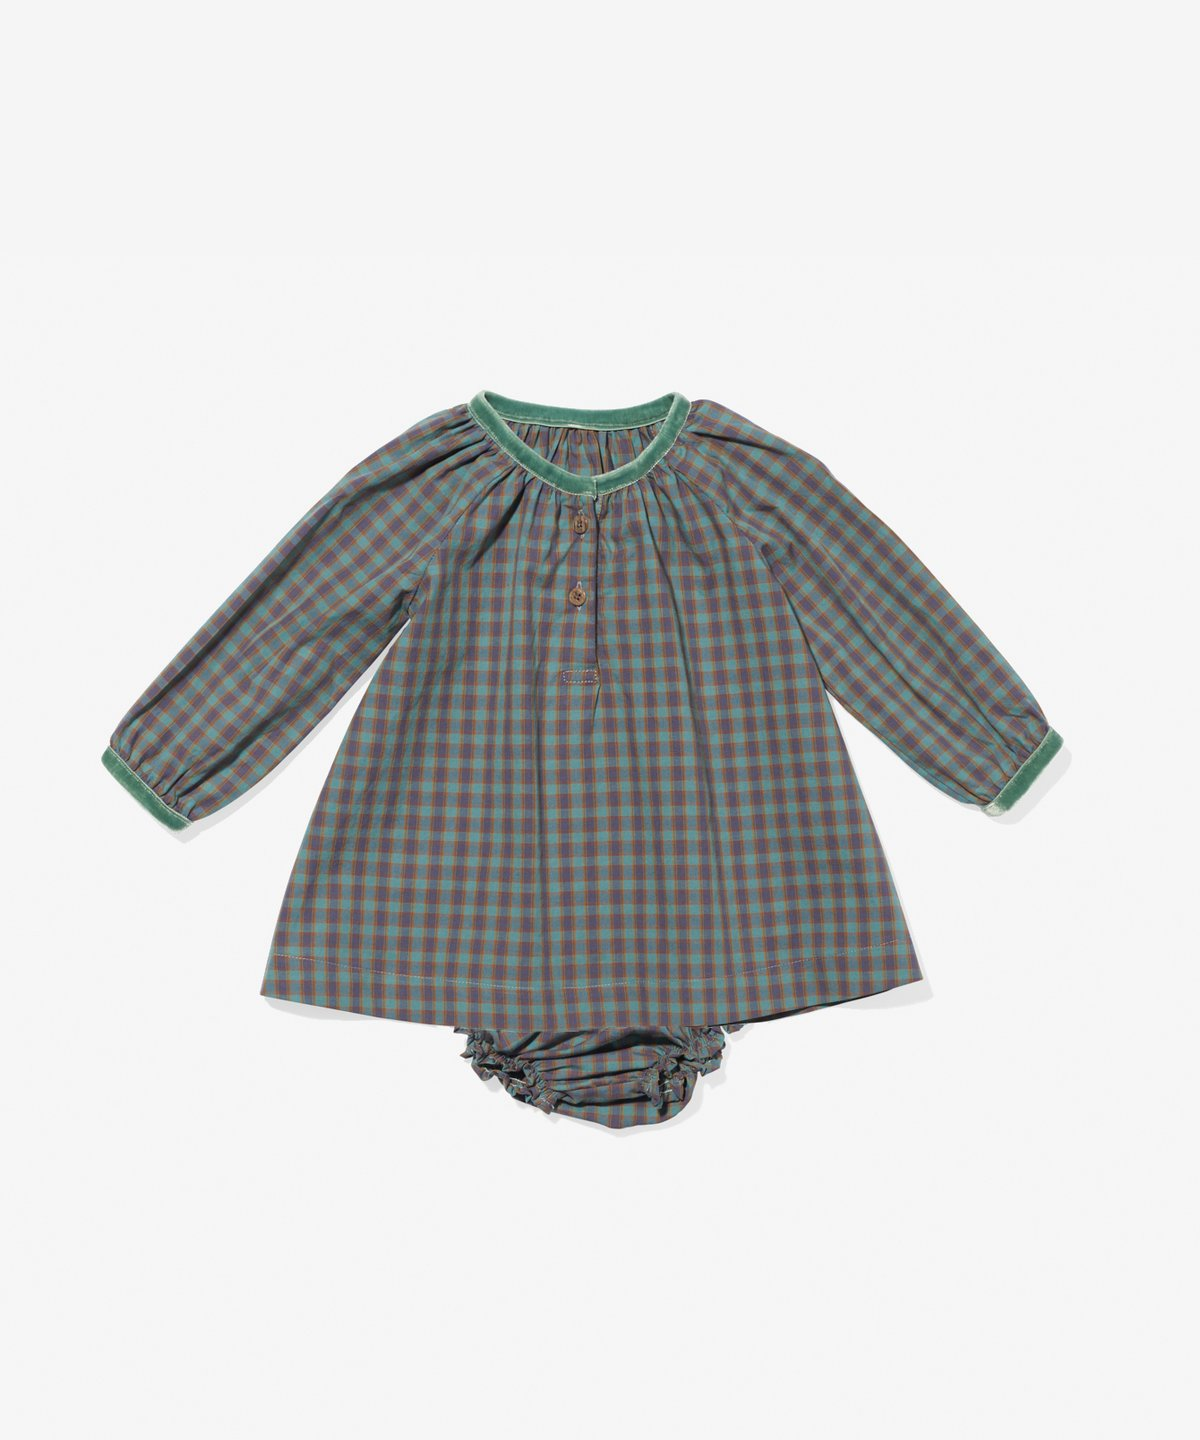 ElizabethDressBaby_WinterCheck_A_1200x.jpg